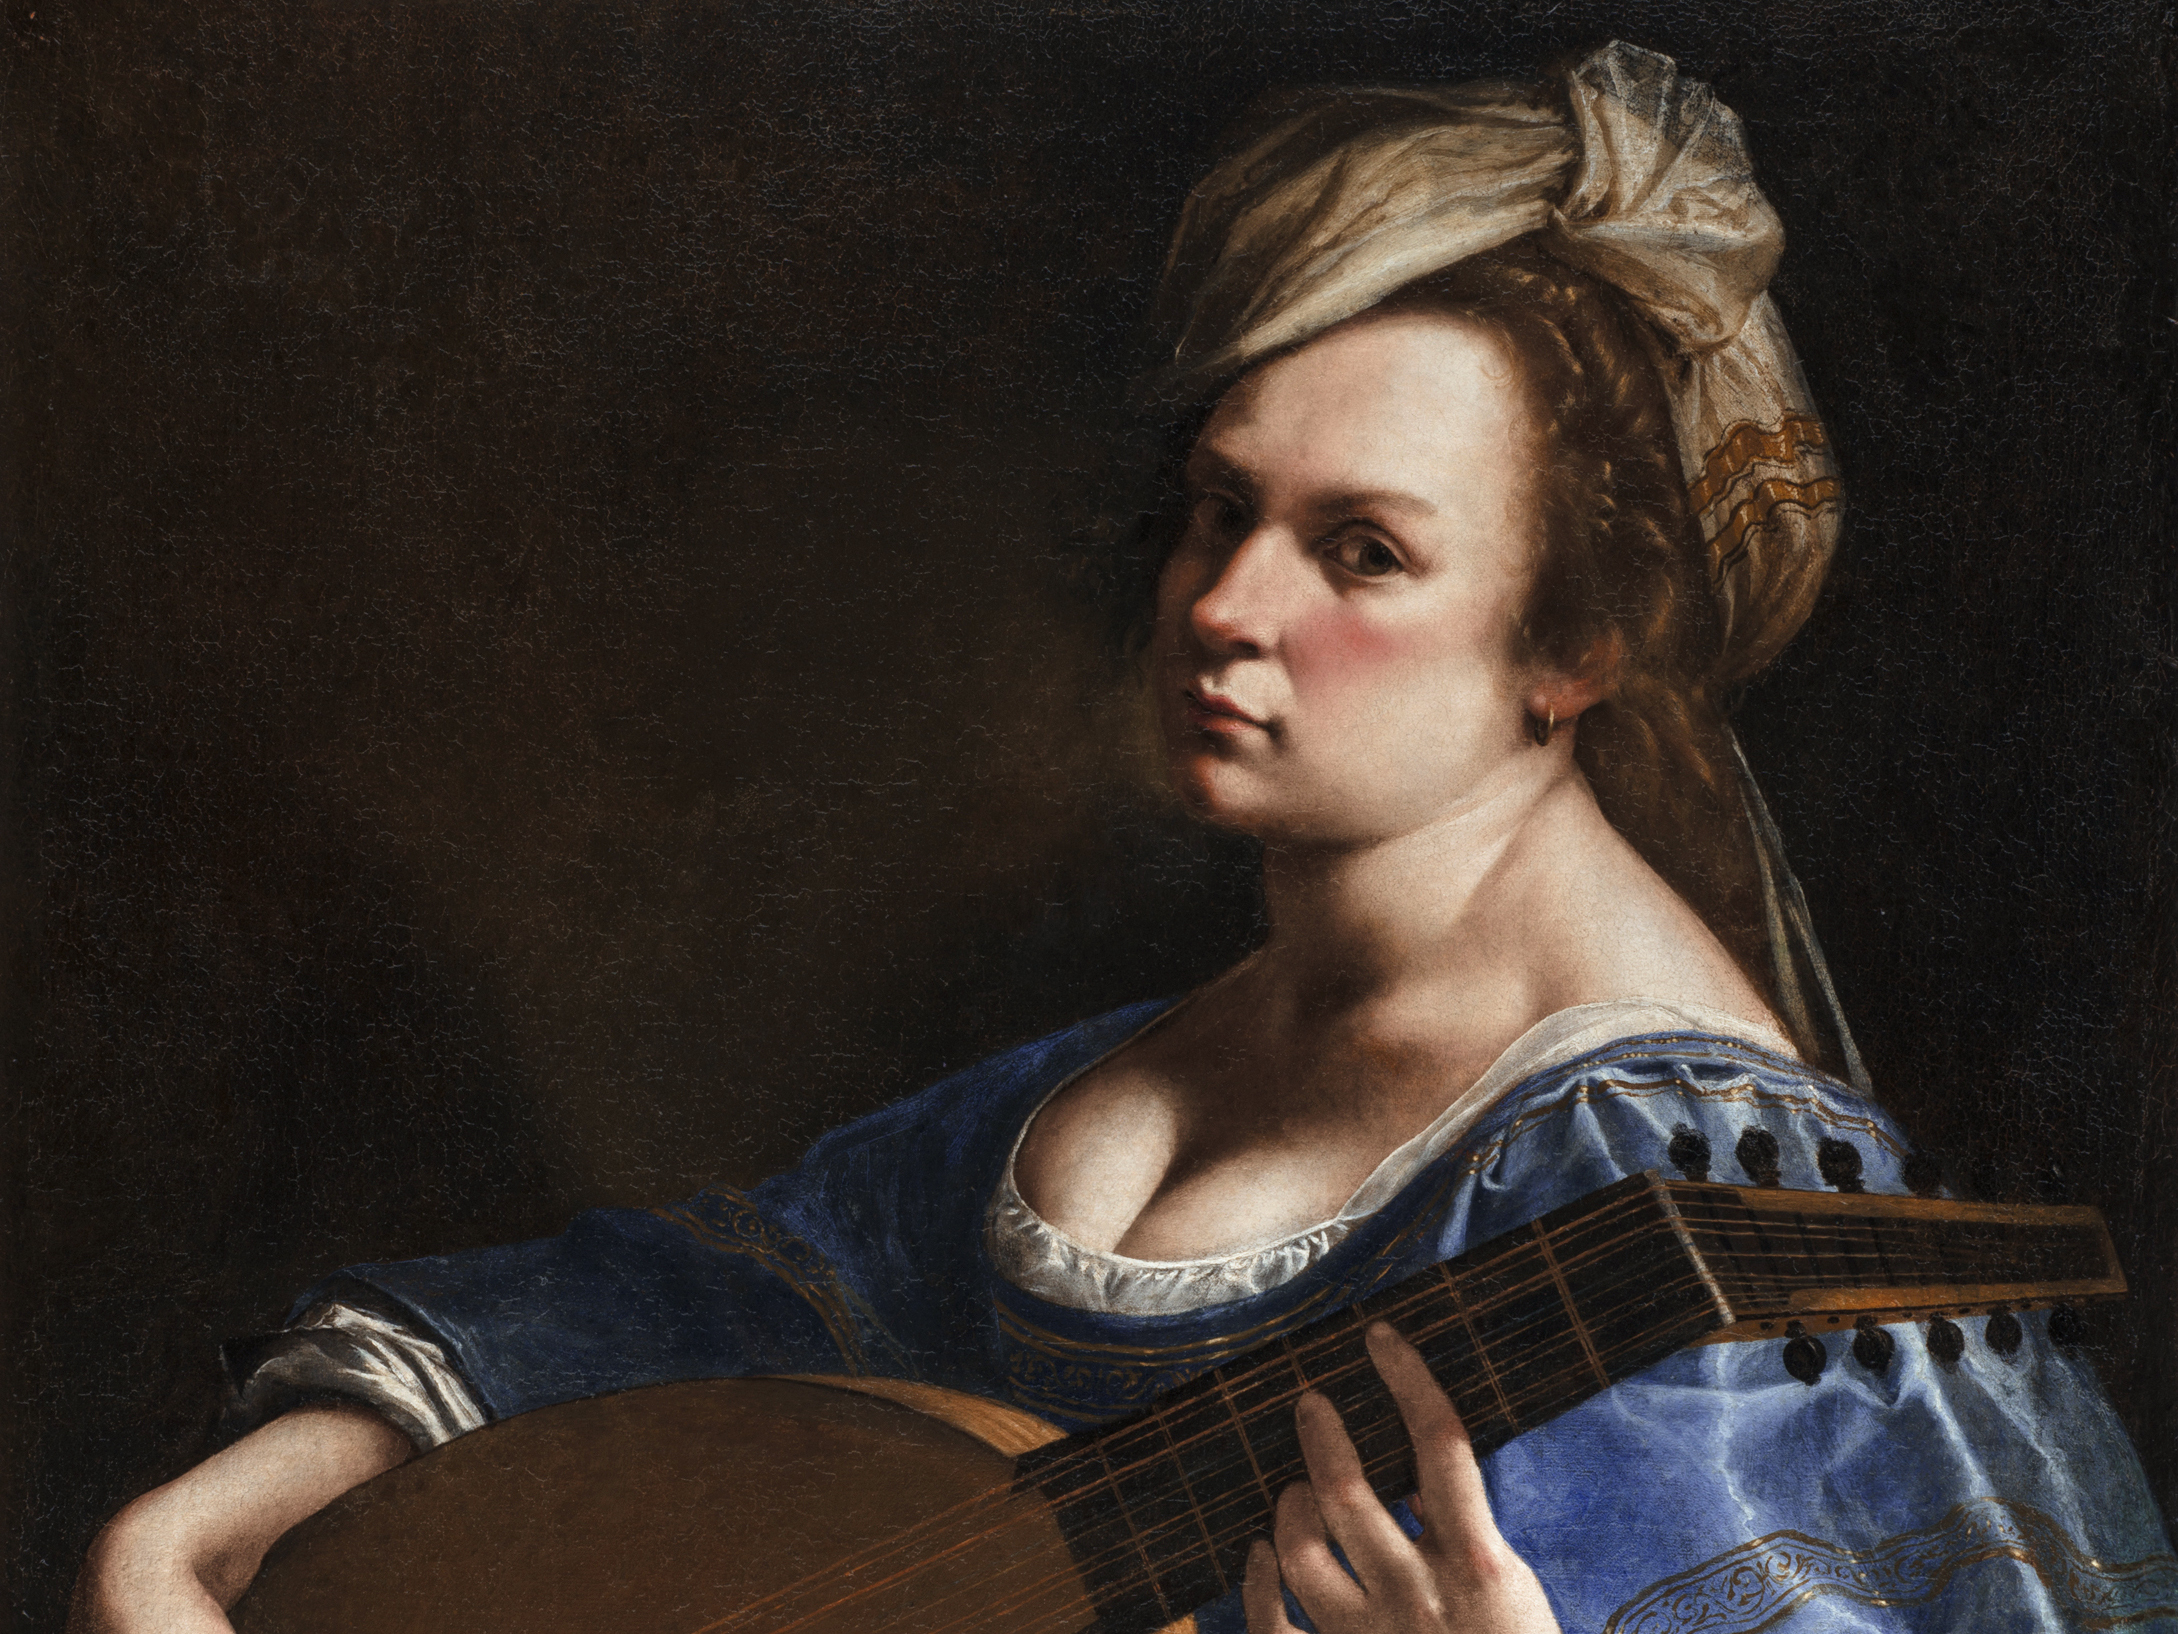 Artemisia Gentileschi painted this Self-Portrait as a Lute Player during her years living in Florence. Palazzo Braschi